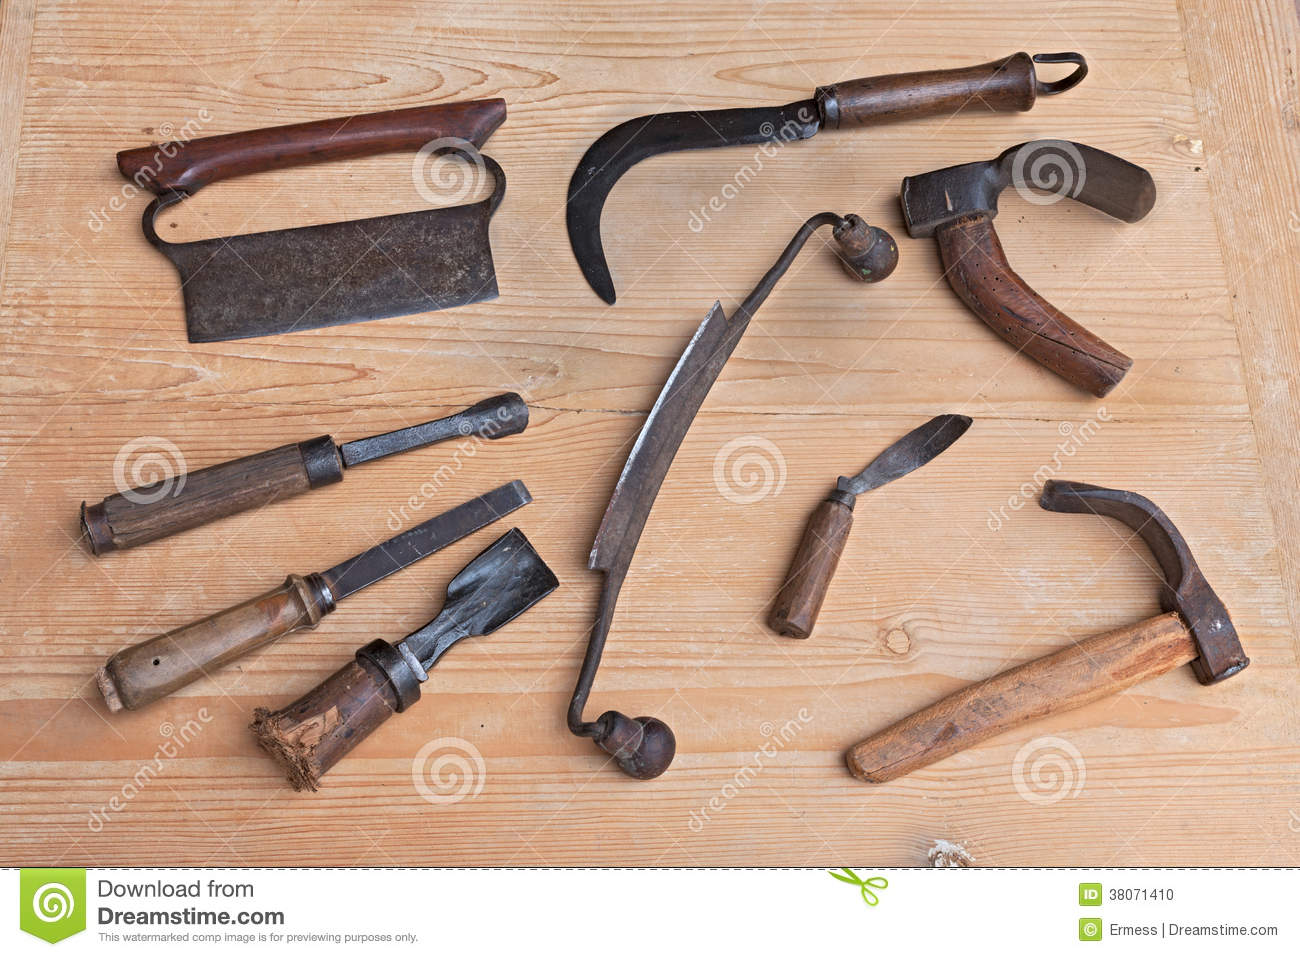 Old wood carving tools stock photo image 38071410 - Herramientas para tallar madera ...